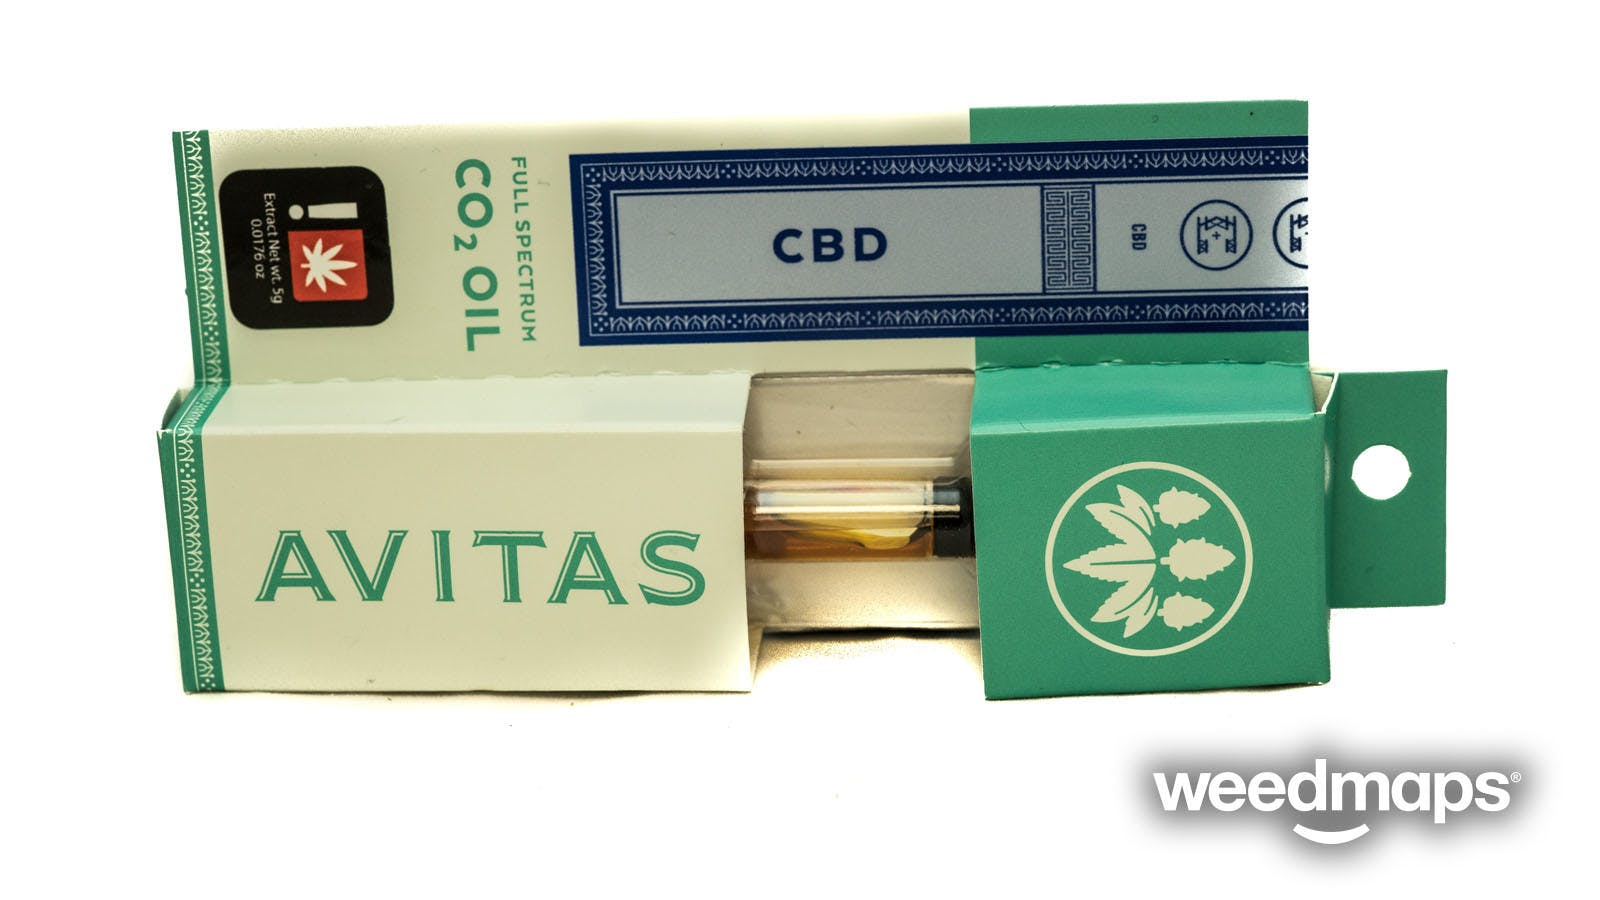 marijuana-dispensaries-paradise-found-in-portland-avitas-cartridge